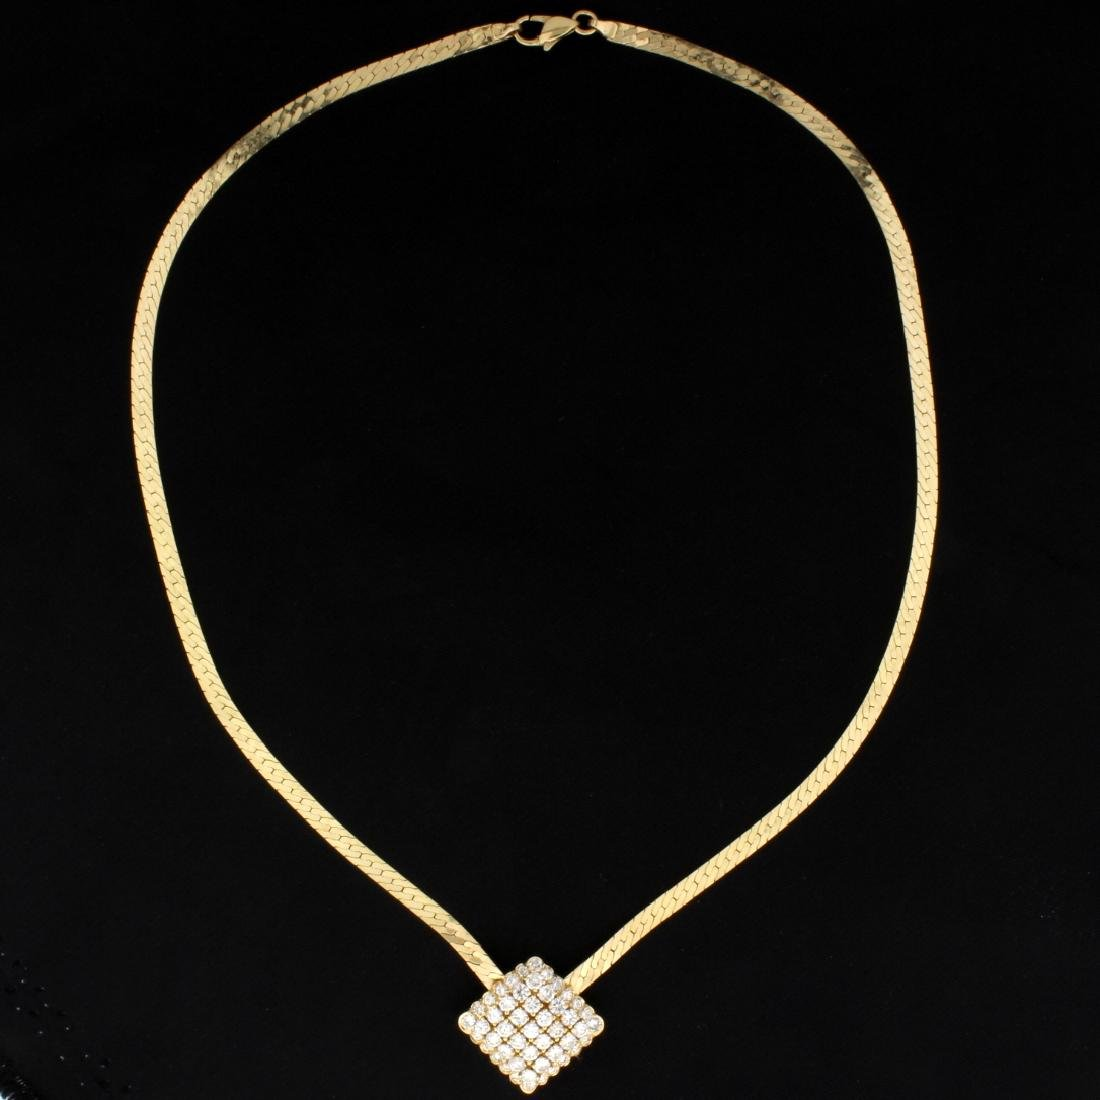 2ct Total Weight Diamond Necklace in 14k Gold